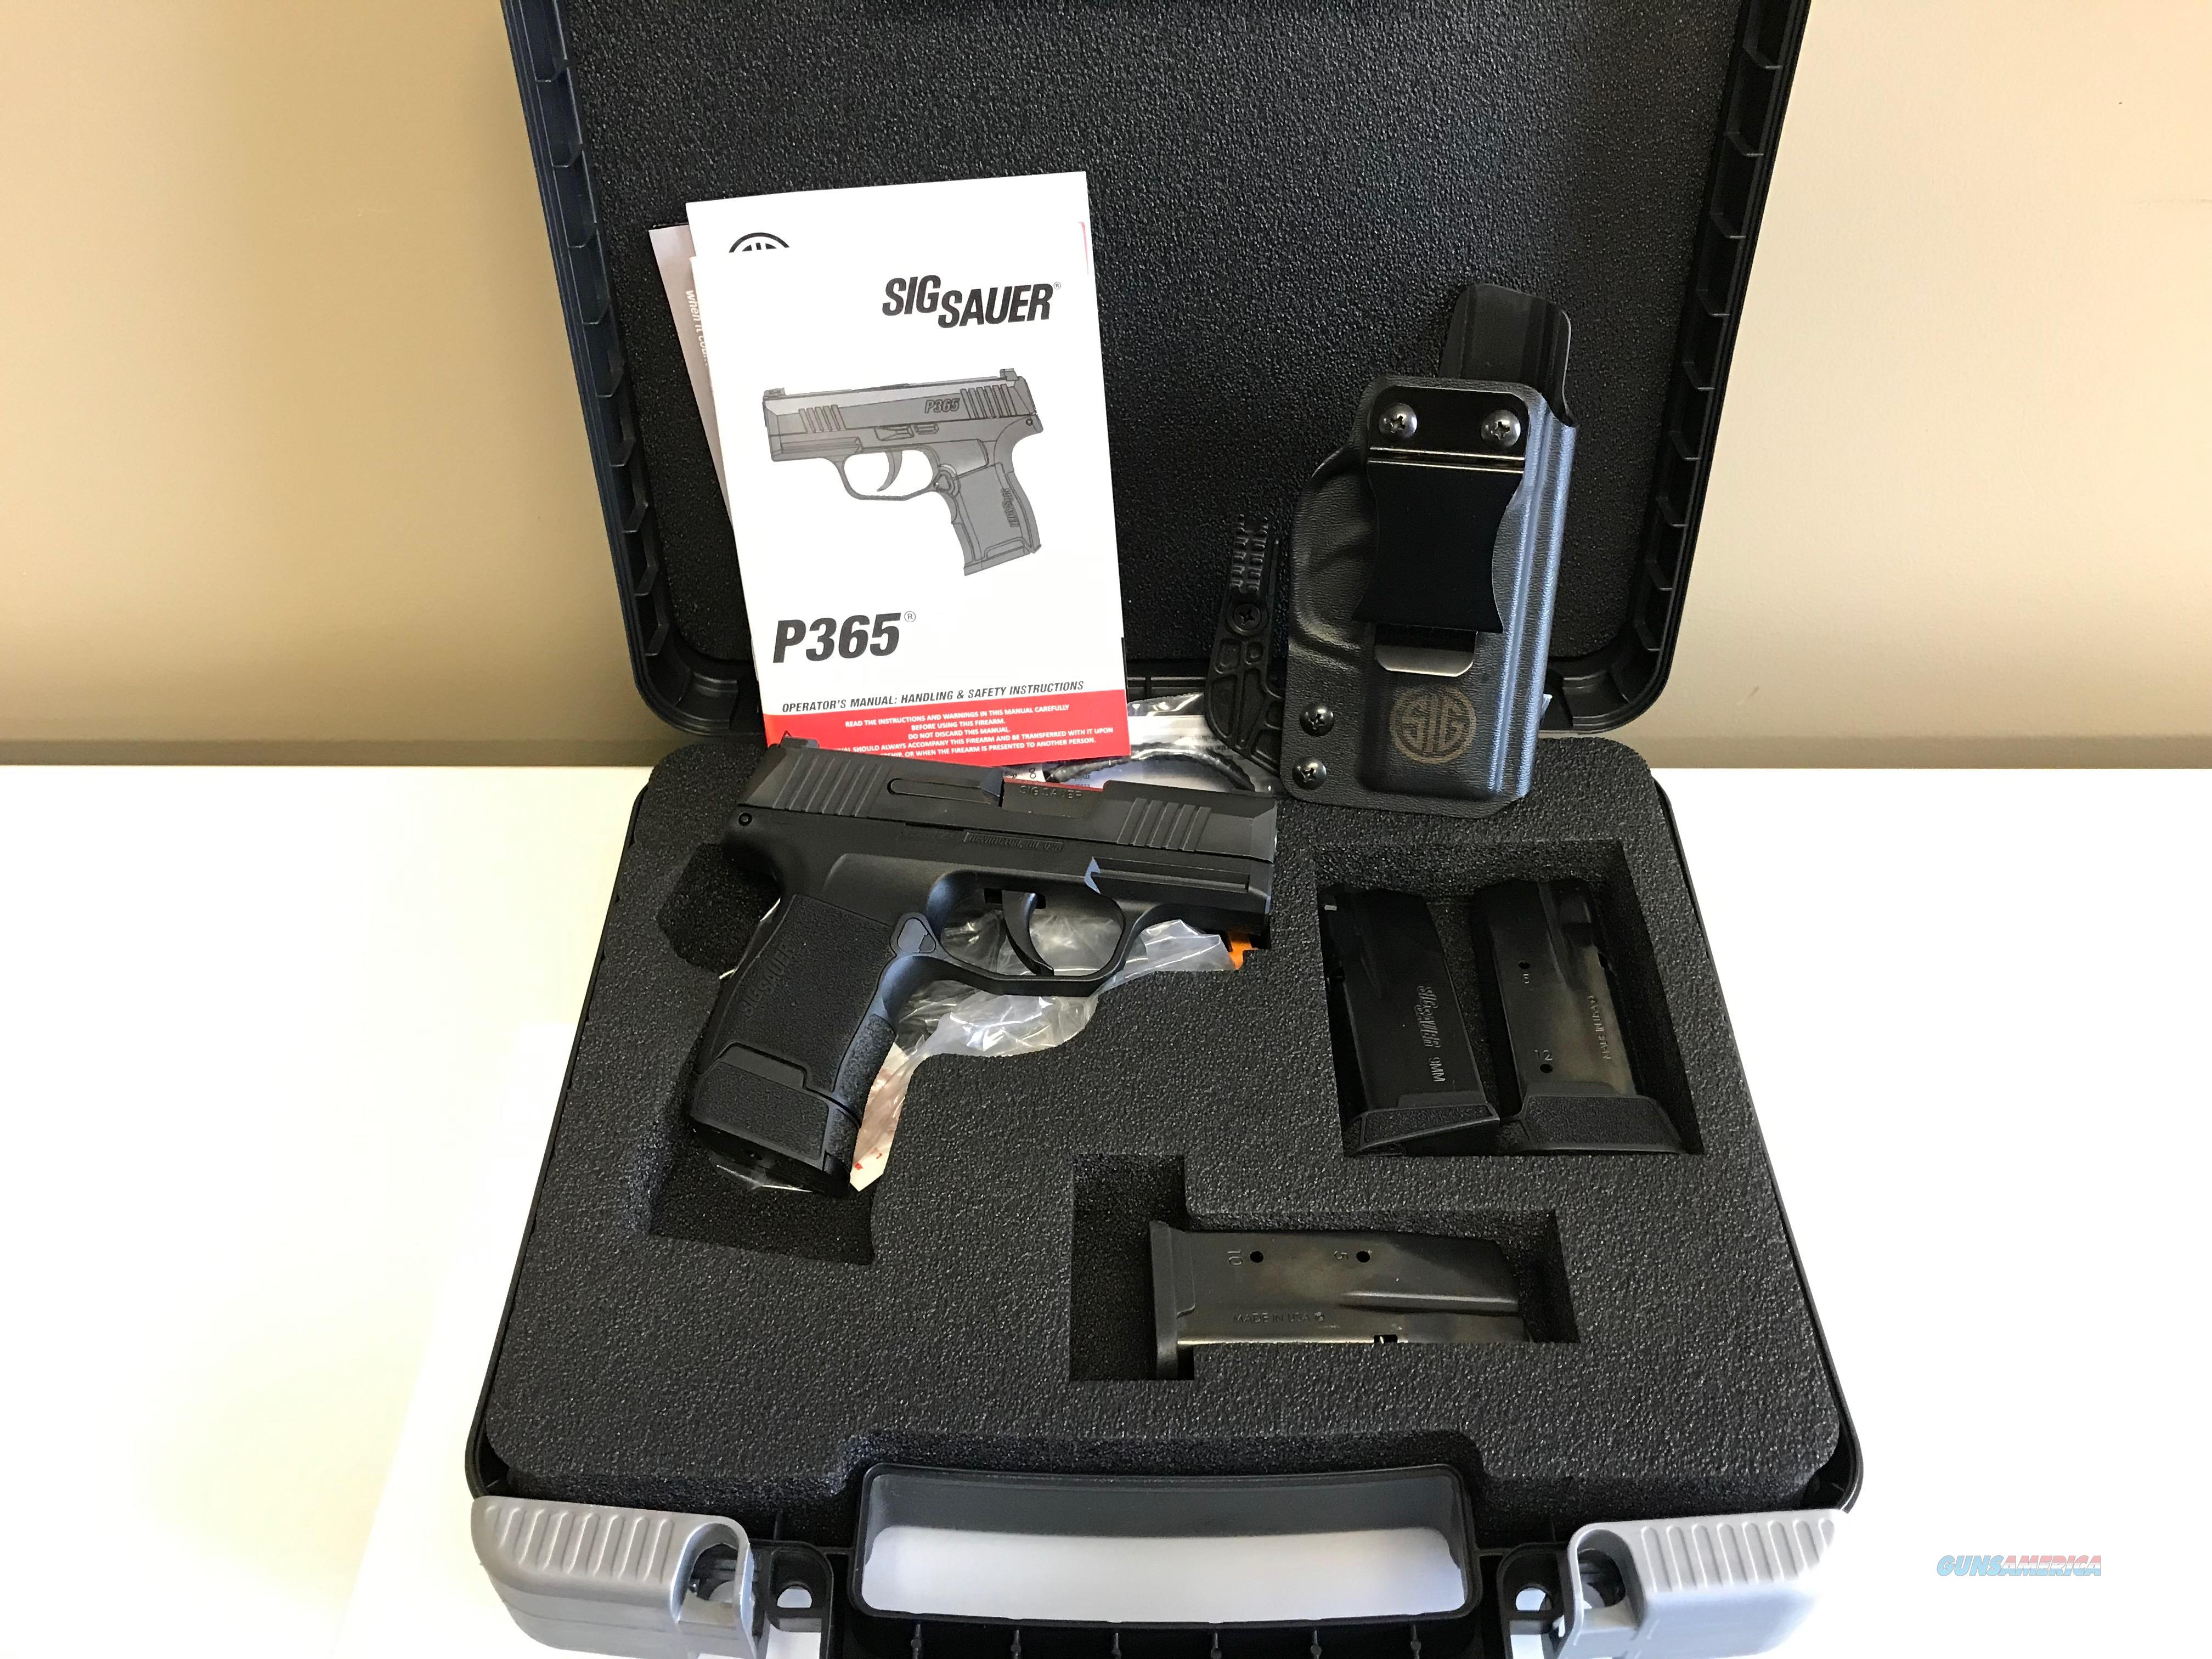 Like New! Used Sig Sauer P365 9mm w/4 Mags and Holster  Guns > Pistols > Sig - Sauer/Sigarms Pistols > P365